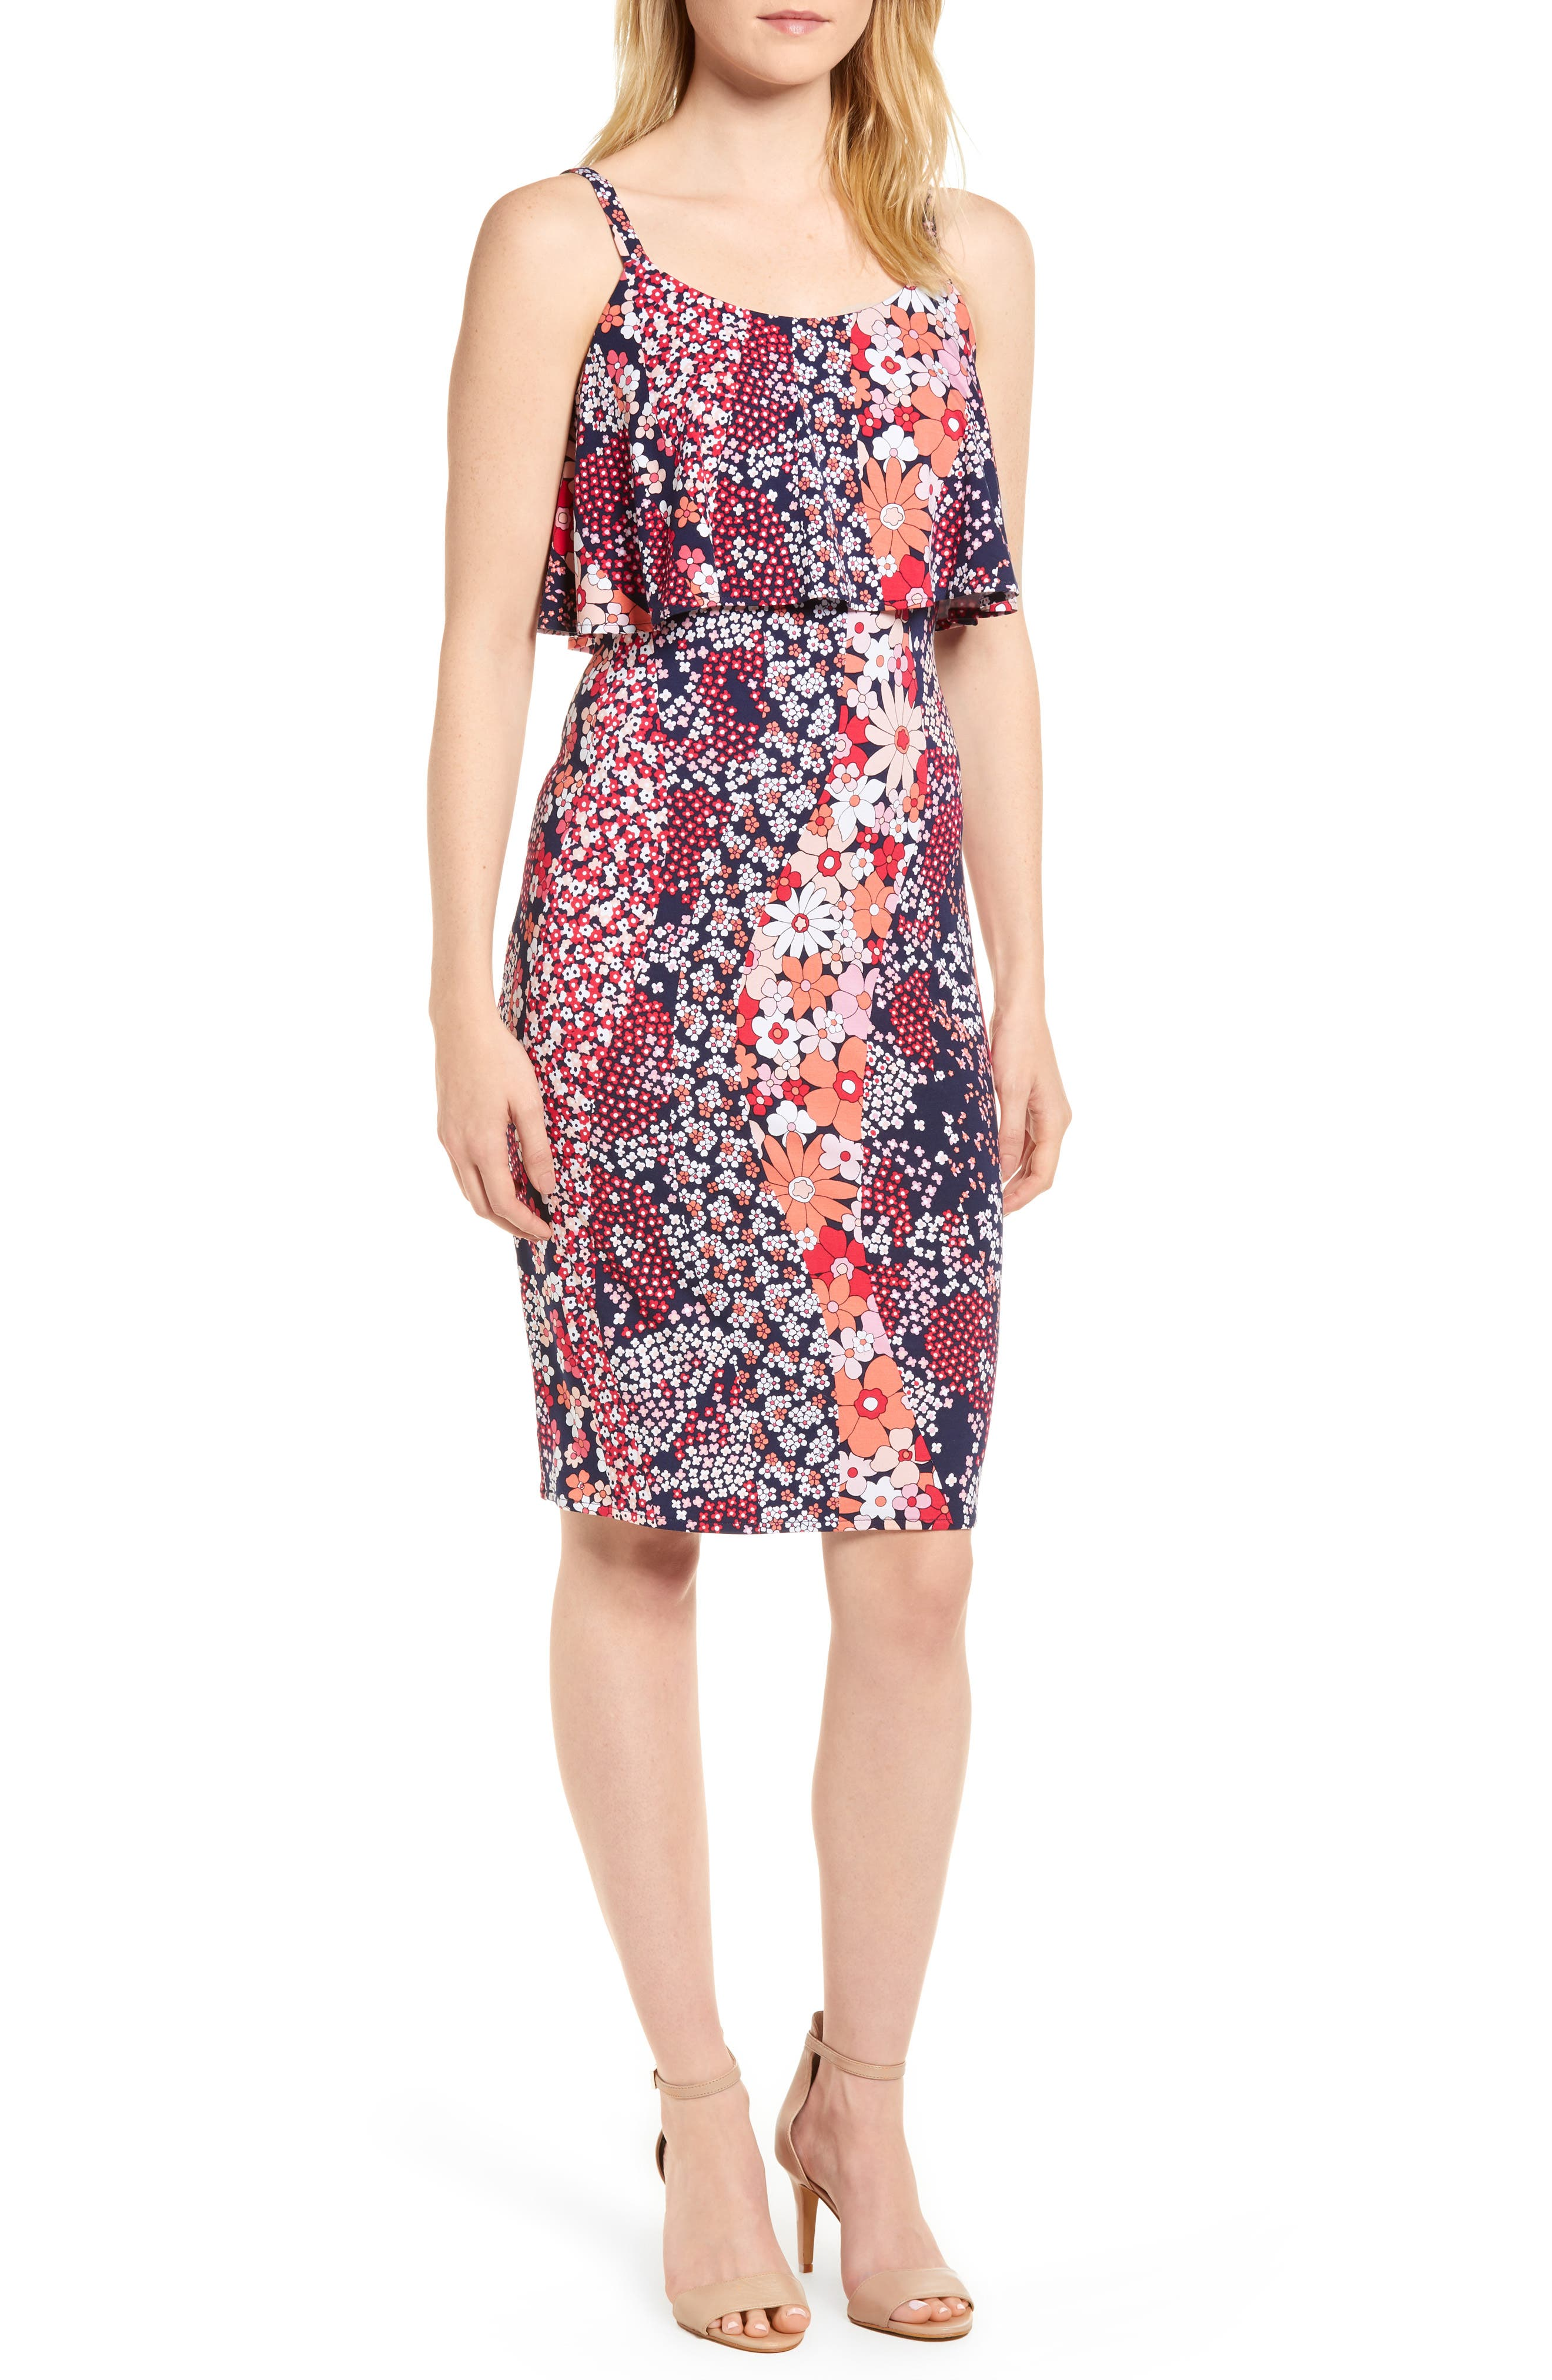 Print Floral Dress,                             Main thumbnail 1, color,                             True Navy/ Bright Blush